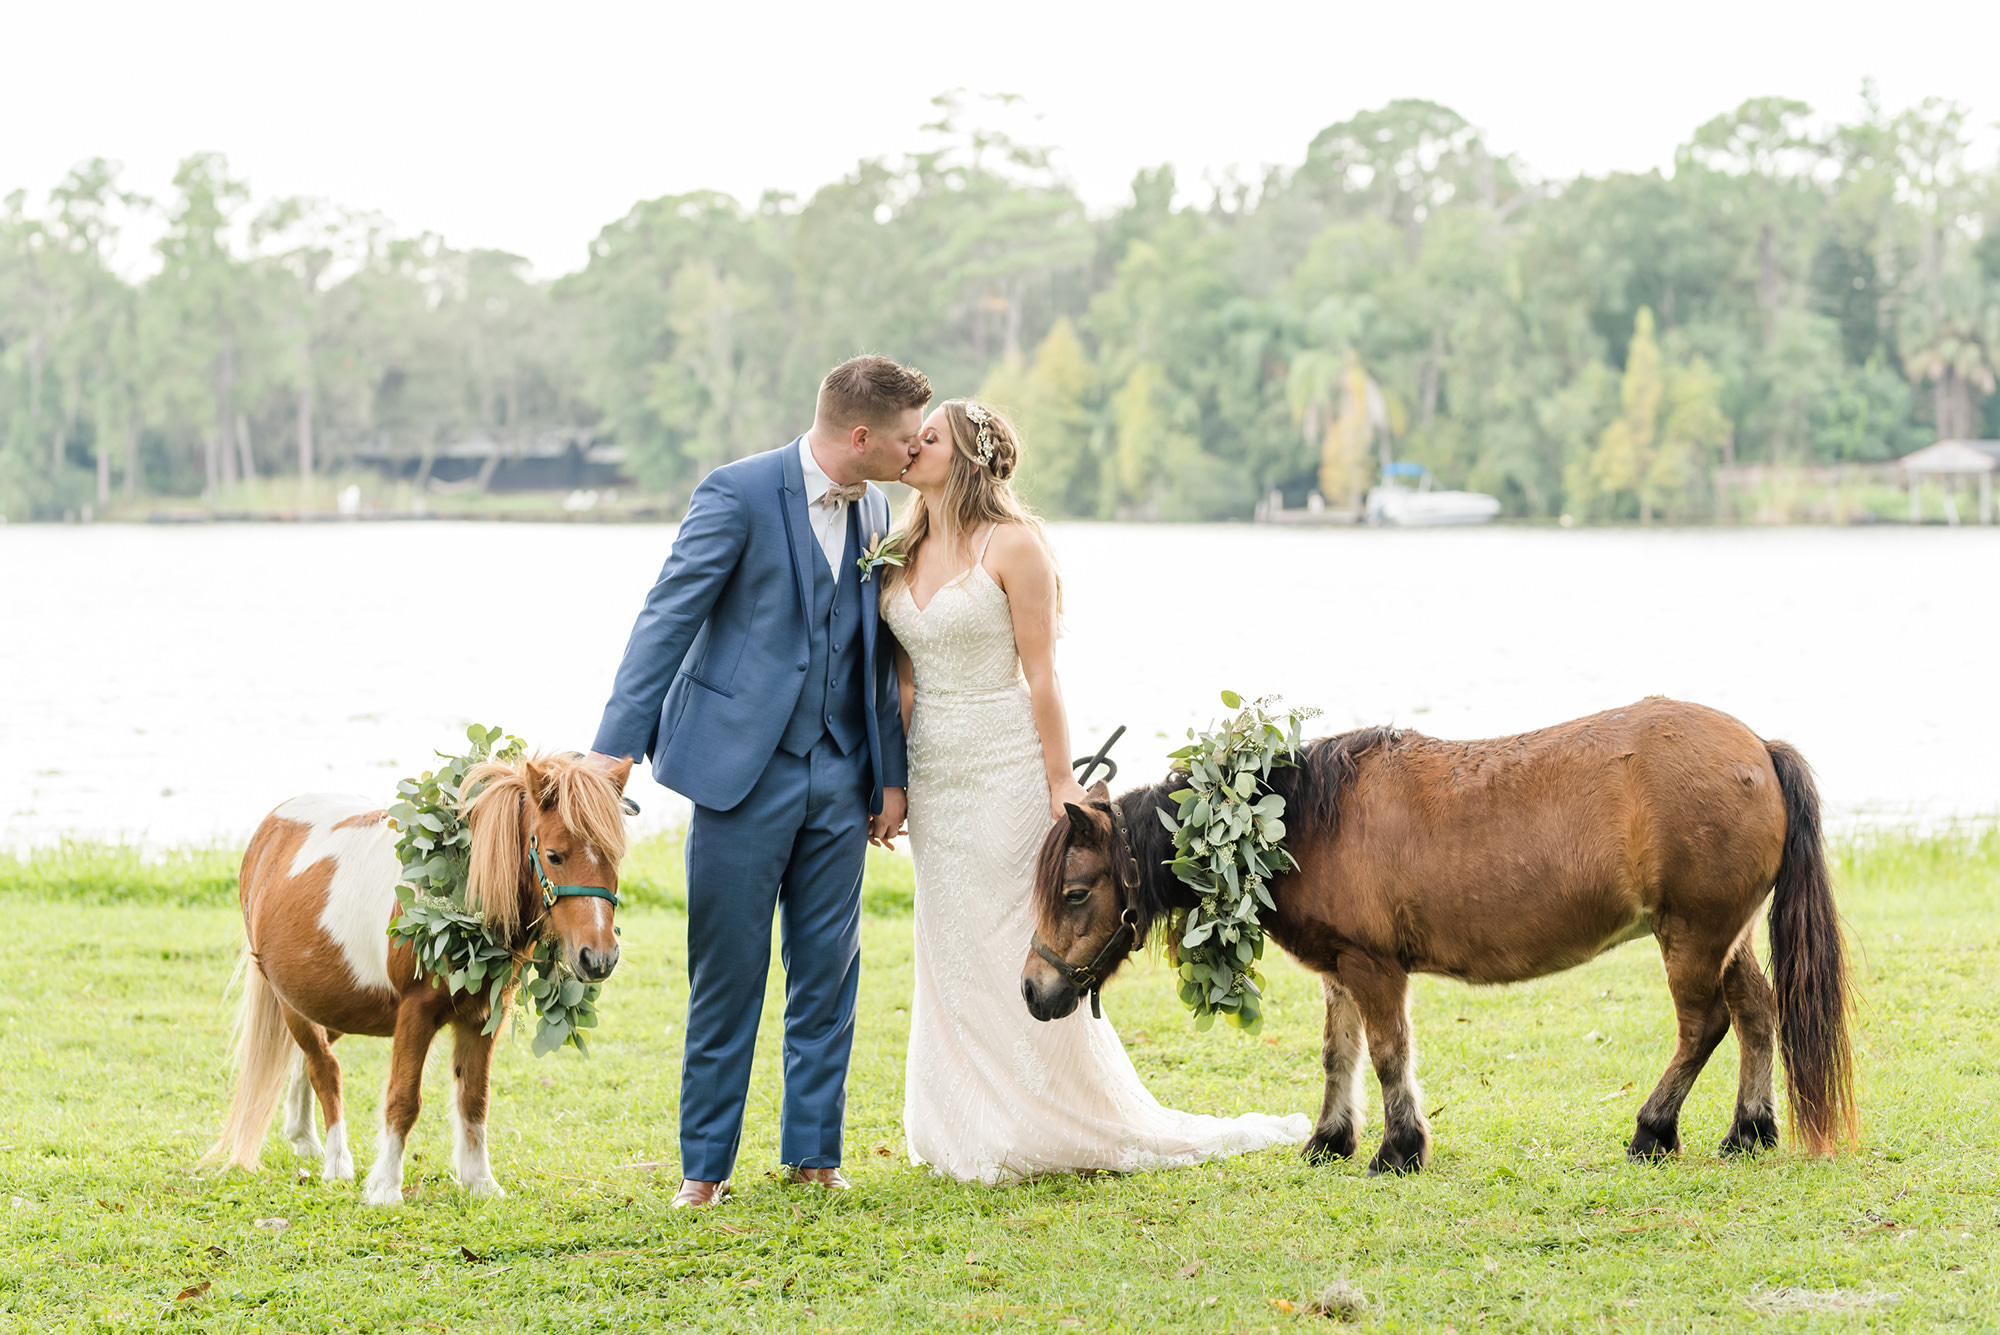 Florida Bride and Groom Wedding Portrait with Miniature Ponies, Bride Wearing Strapless Beaded Sheath Wedding Dress, Groom in Muted Navy Suit, with Greenery Eucalyptus Leaves for Formal Pet Collar   Tampa Bay Wedding Planner Elegant Affairs by Design